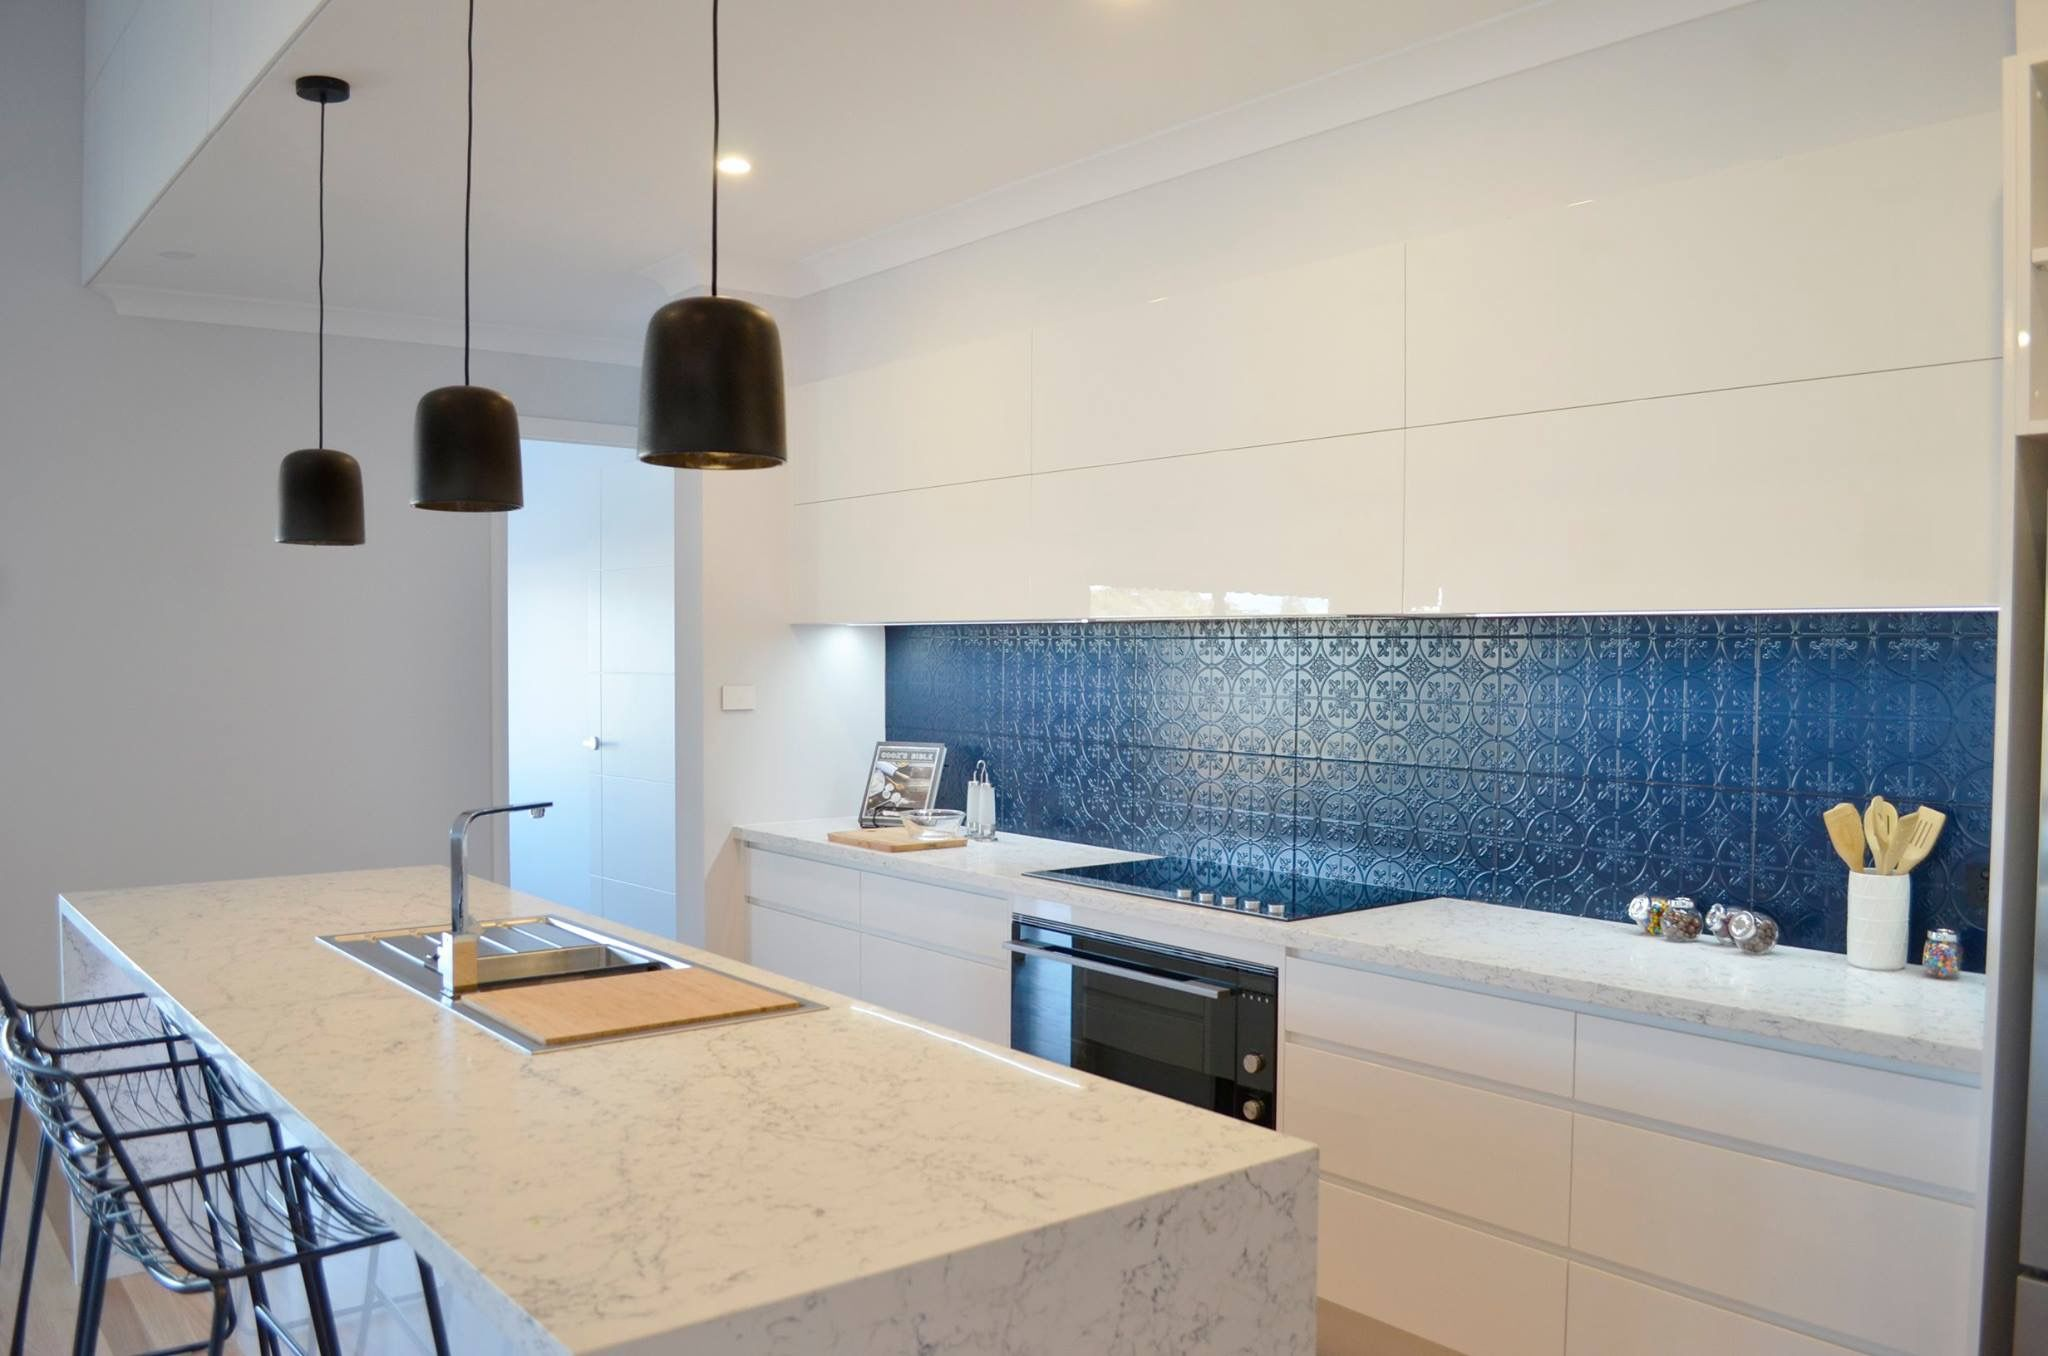 Caesarstone Gallery | Kitchen | Kitchen | Pinterest | Kitchens ...